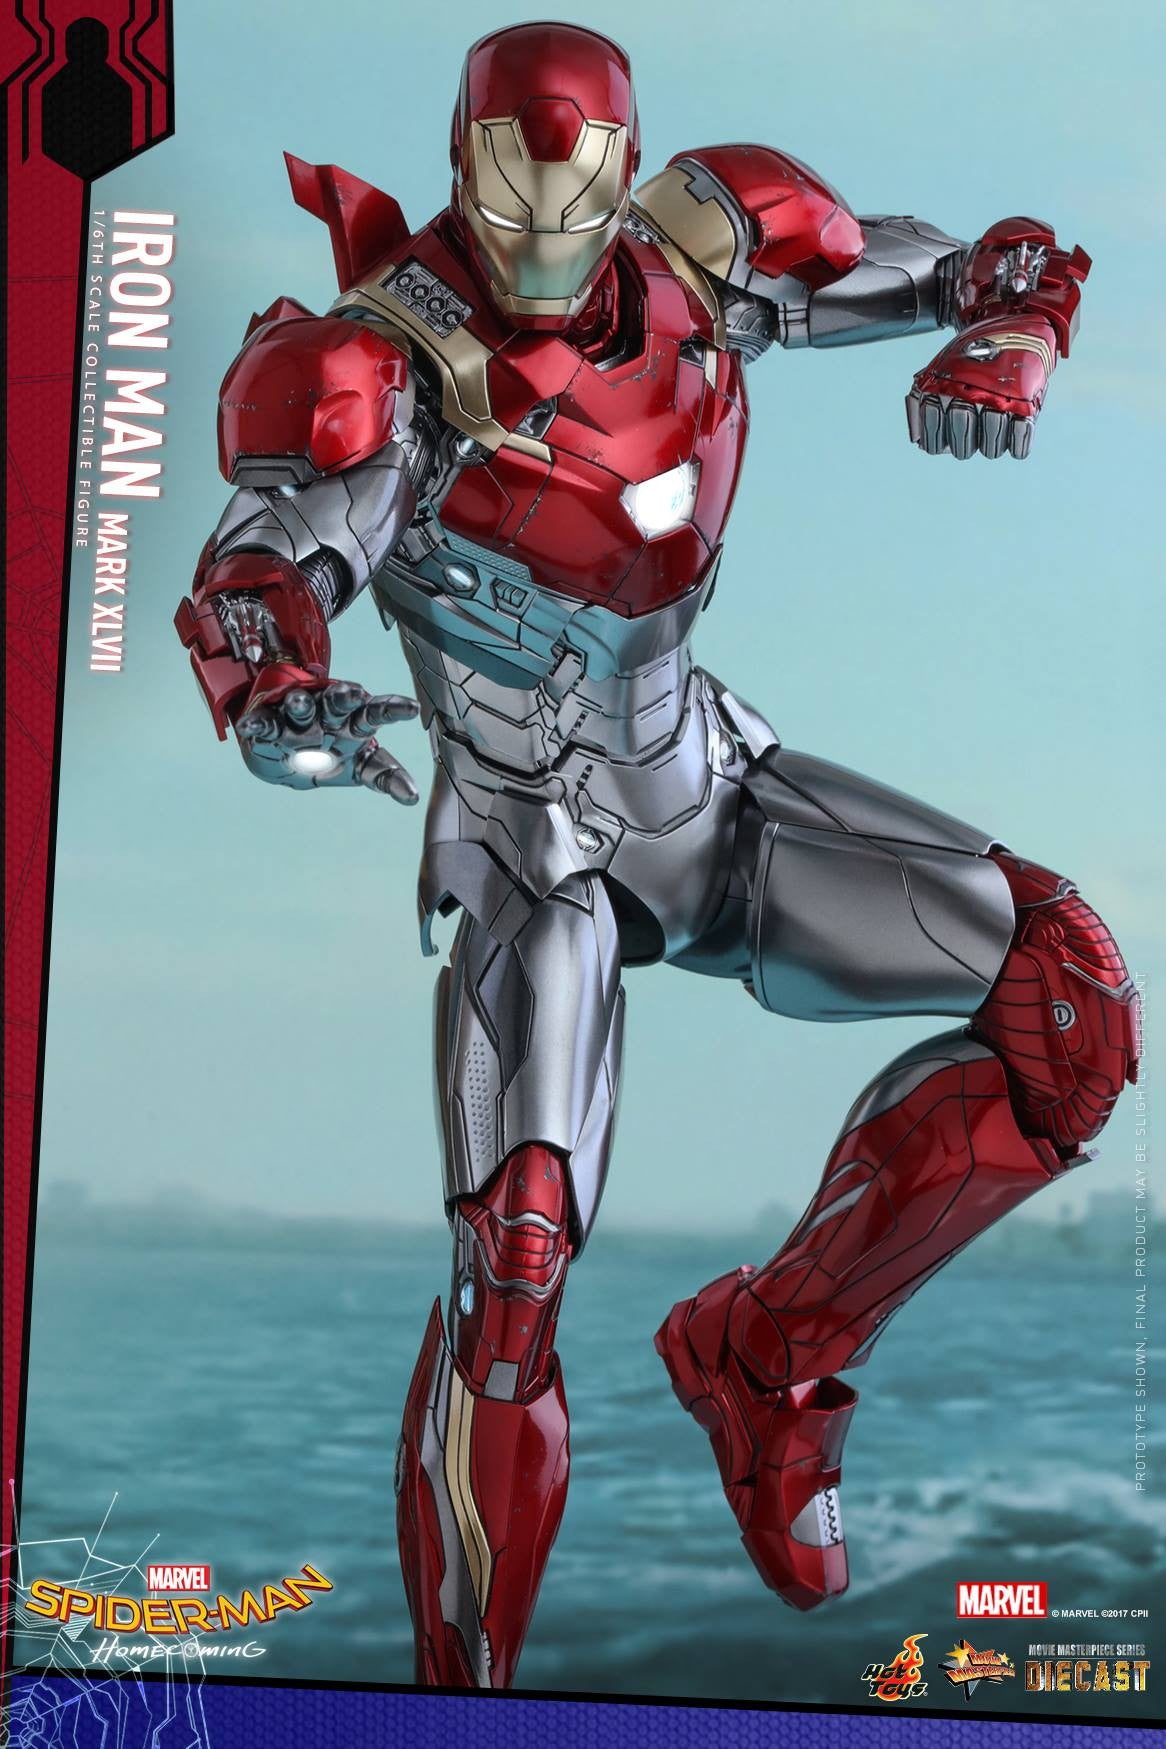 Hot Toys - MMS427D19 - Spider-Man: Homecoming - Iron Man Mark XLVII